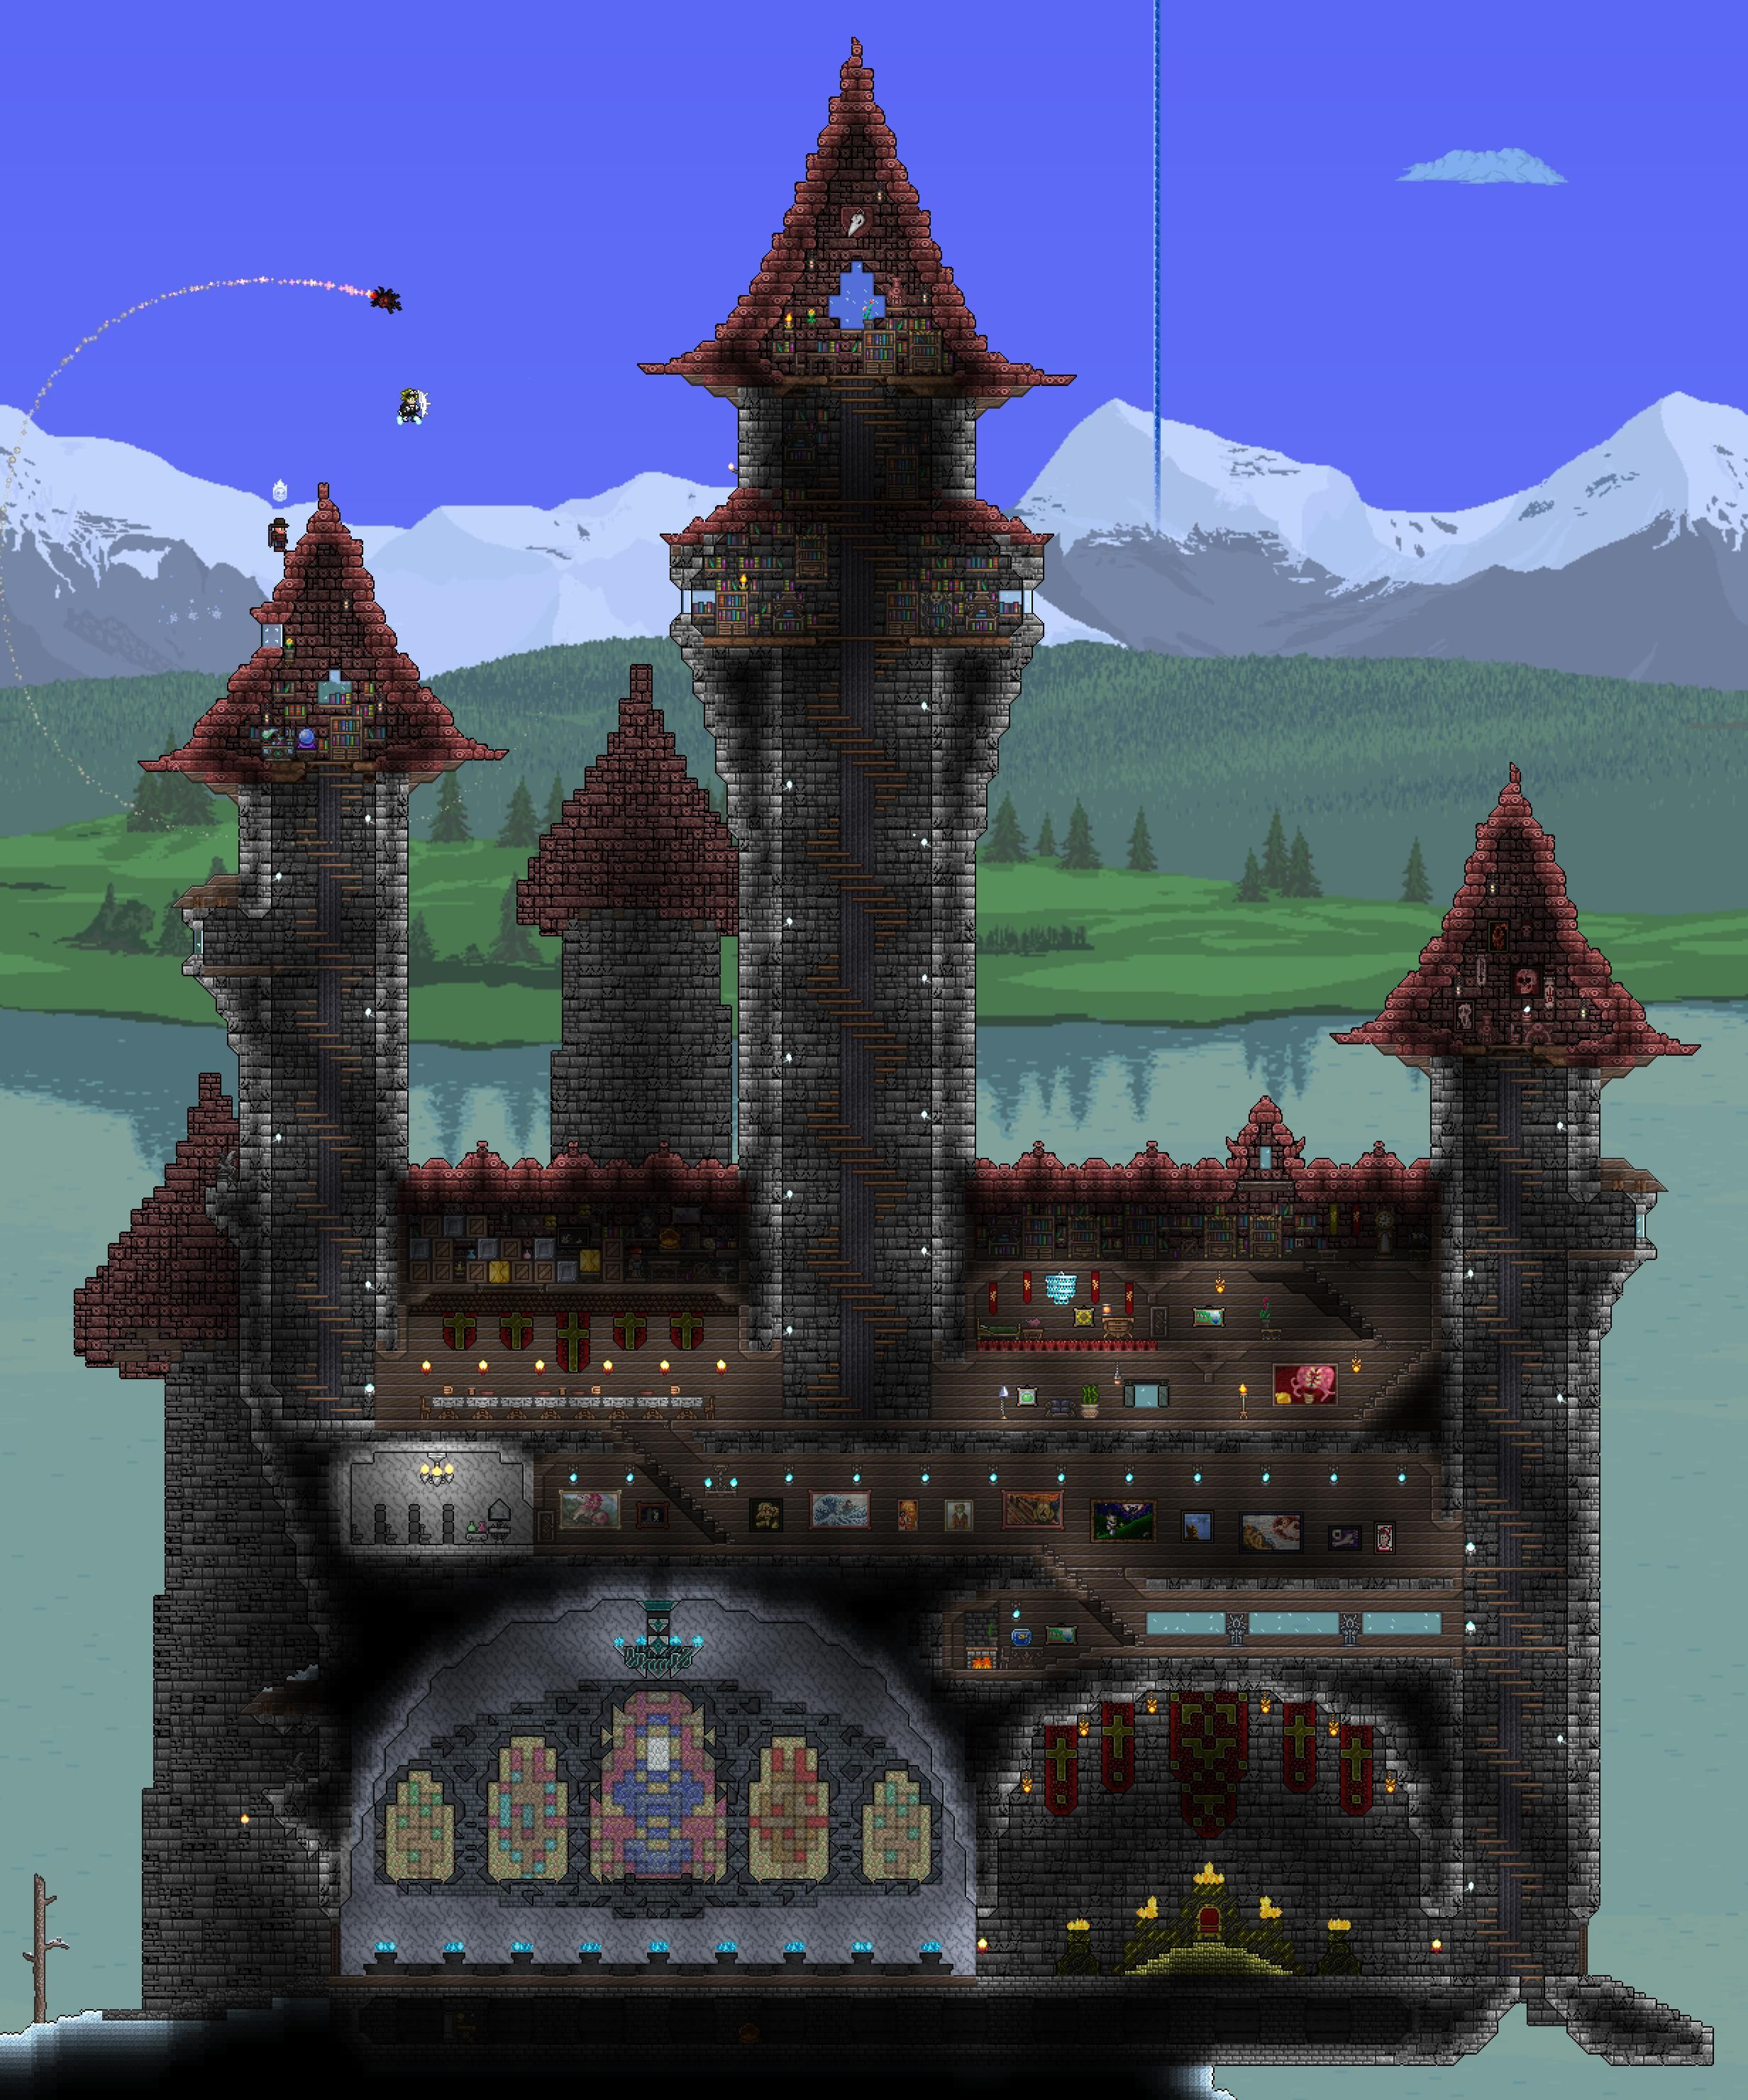 48782bbd1d791b577cd204769bdb8f40 Starbound Simple House Designs on terraria house designs, minecraft simple house designs, starbound ship designs,